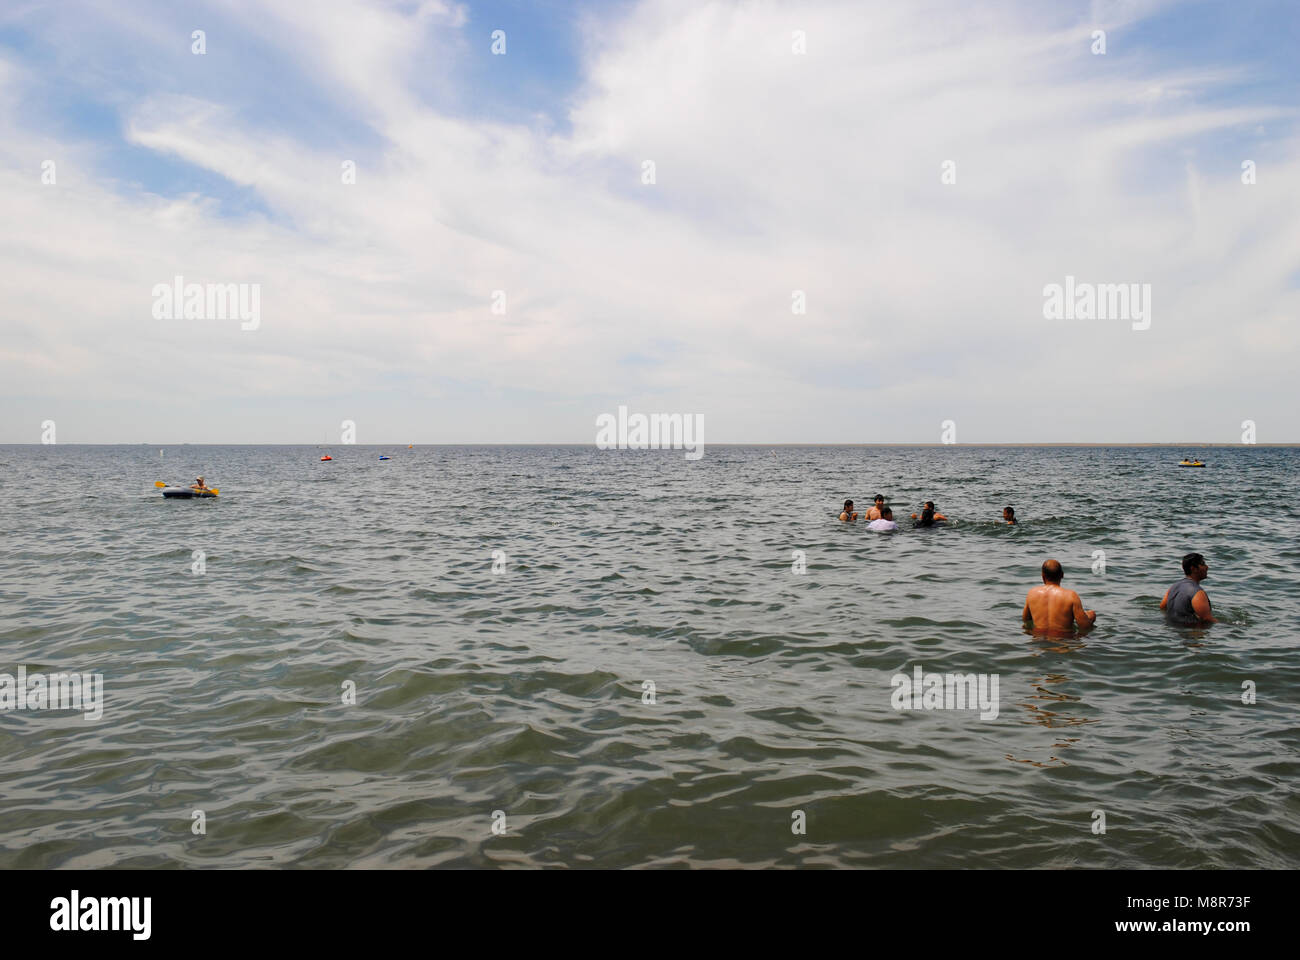 people swimming in the lake - Stock Image